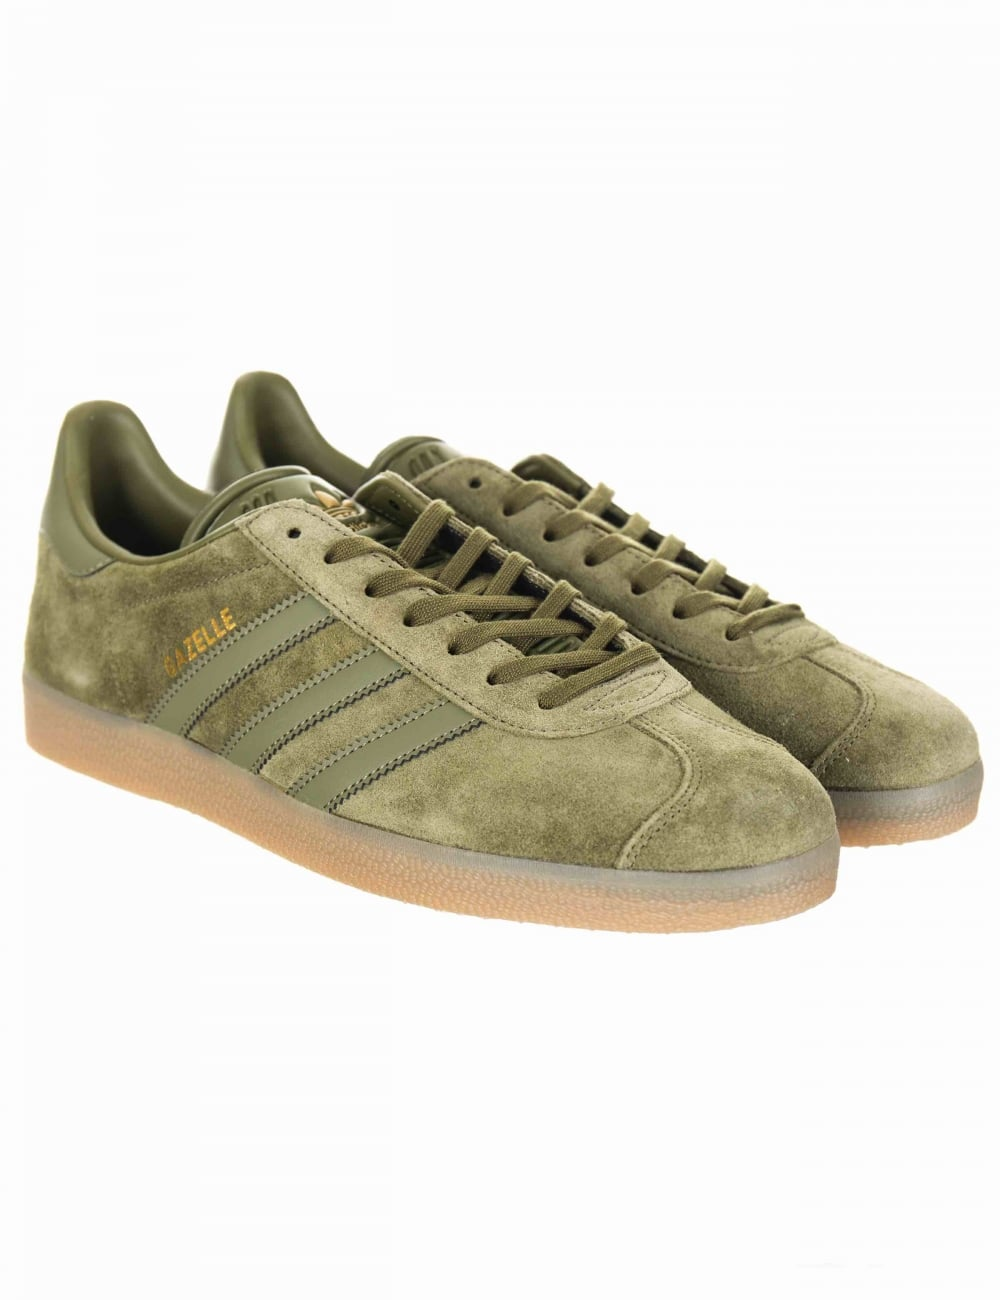 5ad6317b82b8 Adidas Originals Gazelle OG Shoes - Olive Cargo Gum - Trainers from ...